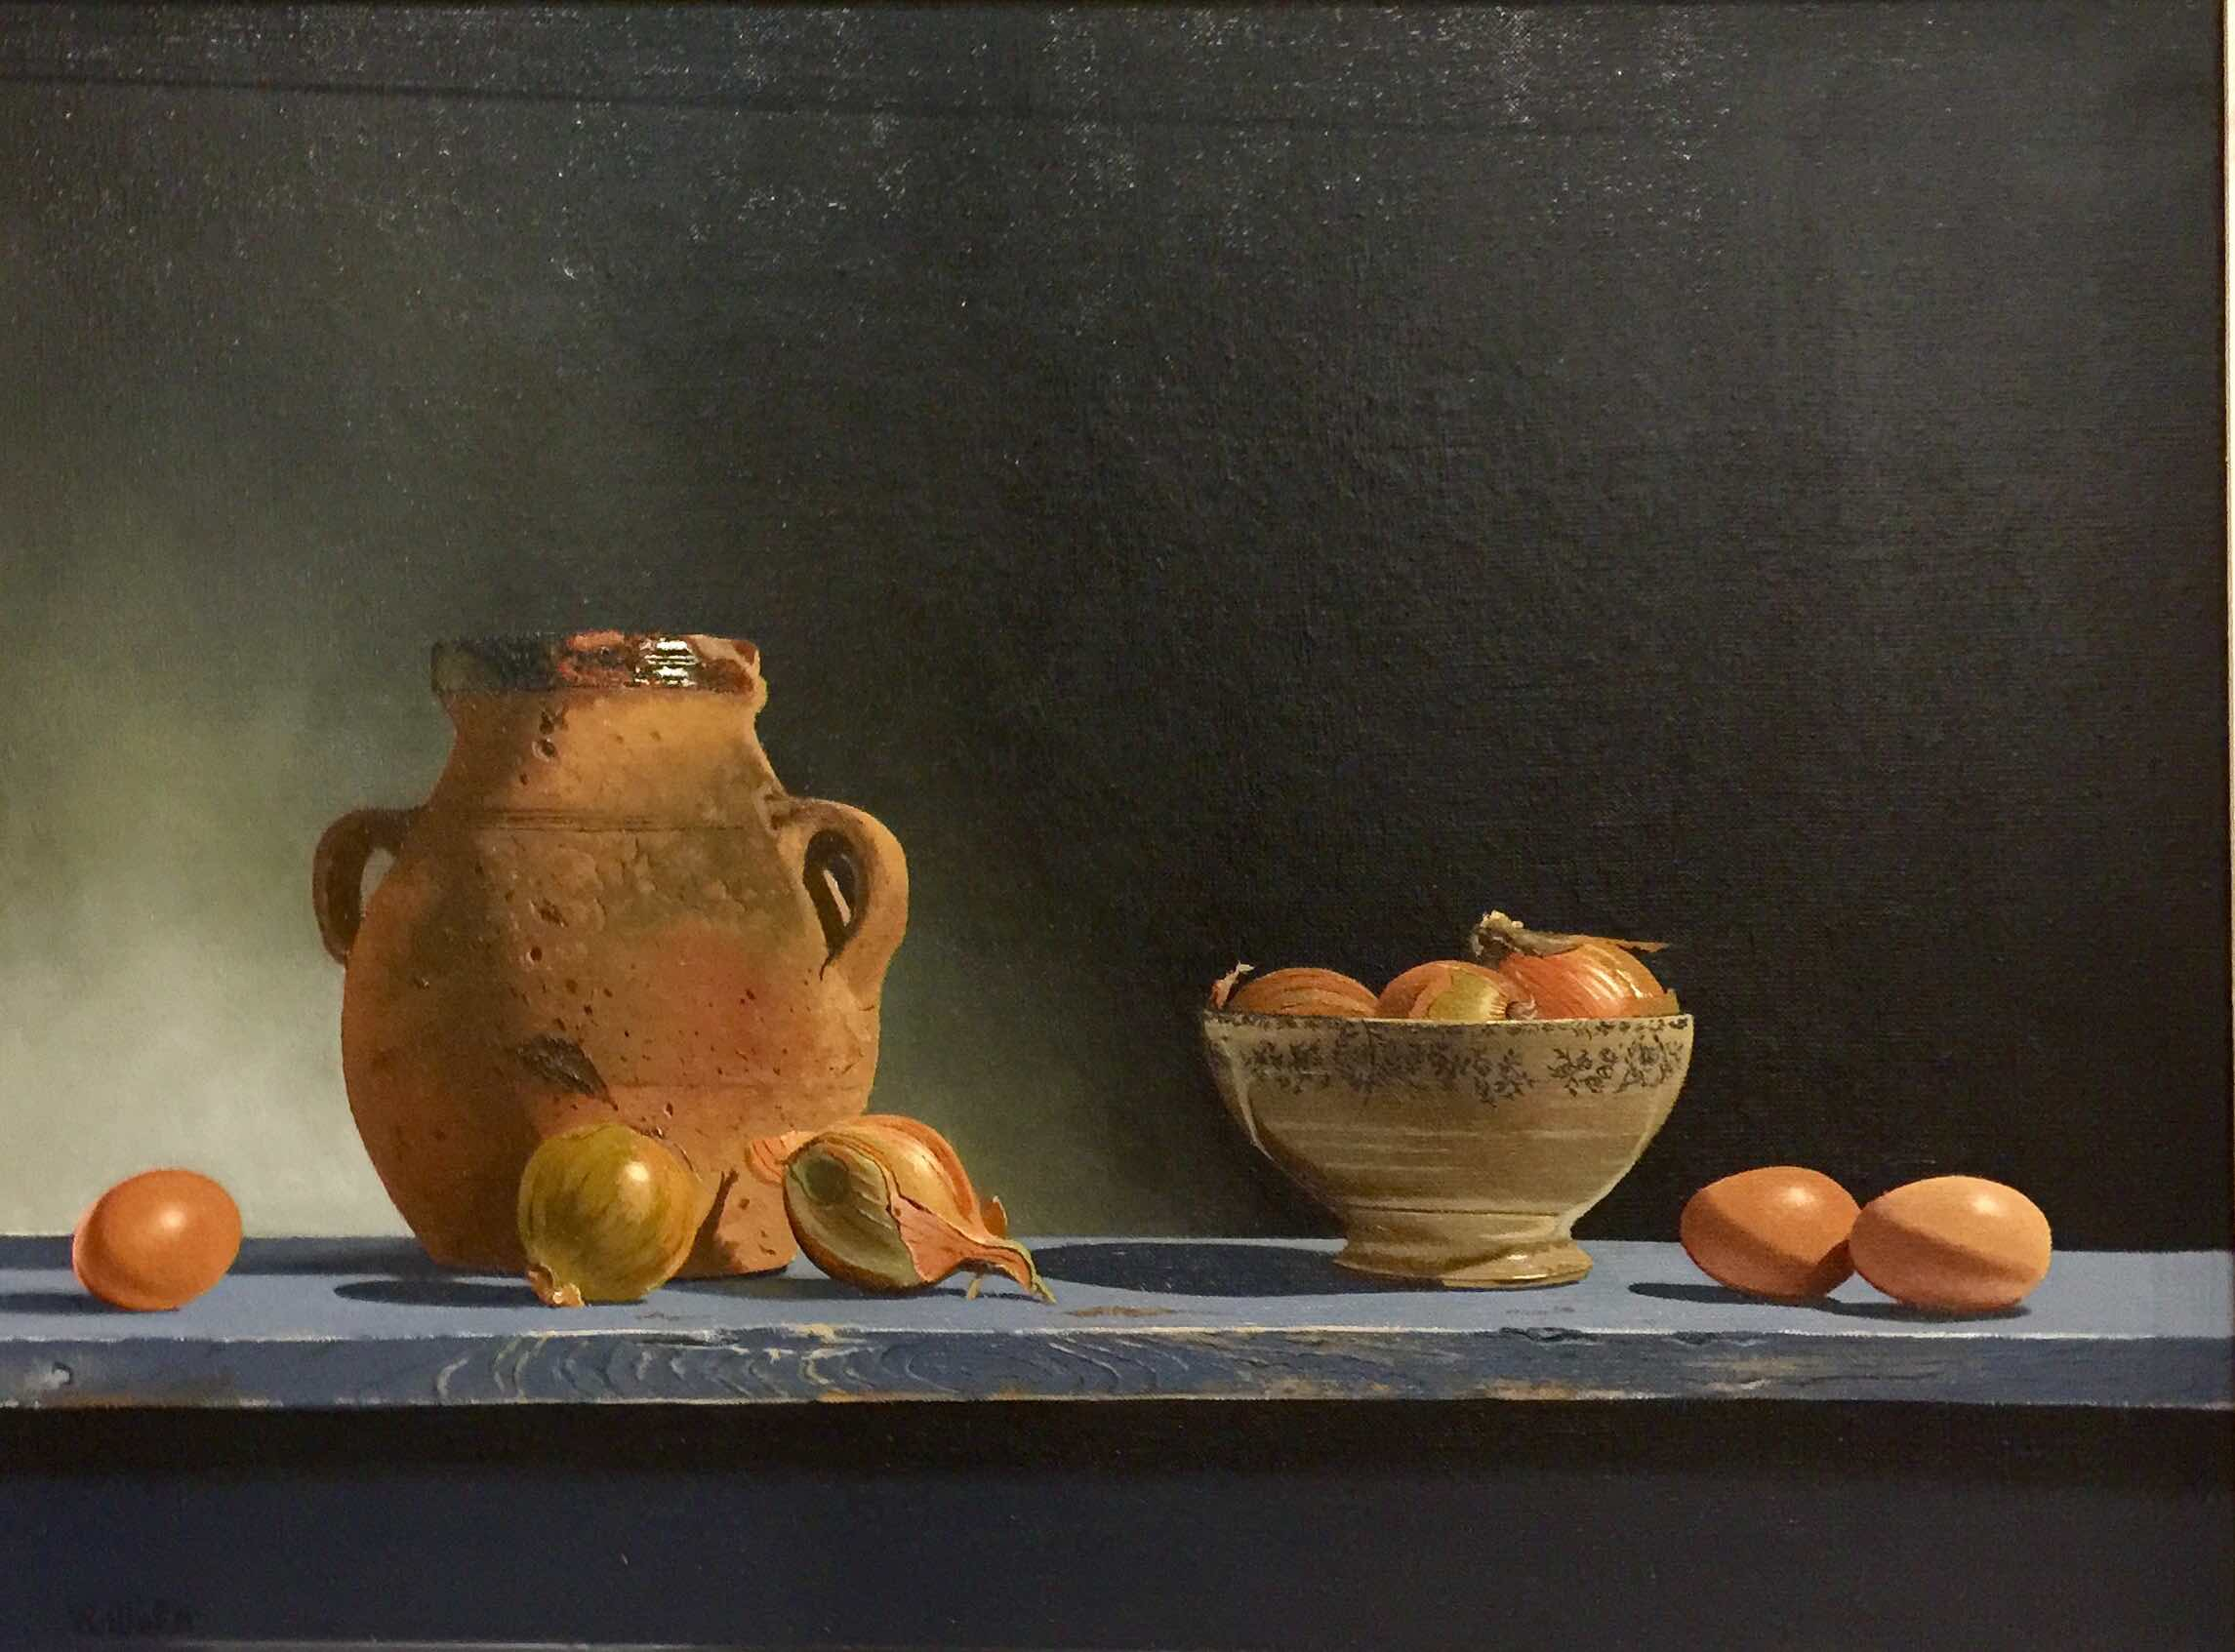 <span class=&#34;link fancybox-details-link&#34;><a href=&#34;/artists/67-robert-walker/works/2784-robert-walker-olive-pot-with-onions-and-eggs/&#34;>View Detail Page</a></span><div class=&#34;artist&#34;><strong>Robert Walker</strong></div> <div class=&#34;title&#34;><em>Olive Pot with Onions and Eggs</em></div> <div class=&#34;medium&#34;>Oil on Linen</div> <div class=&#34;dimensions&#34;>46 x 61 cm </div><div class=&#34;price&#34;>£1,650.00</div>